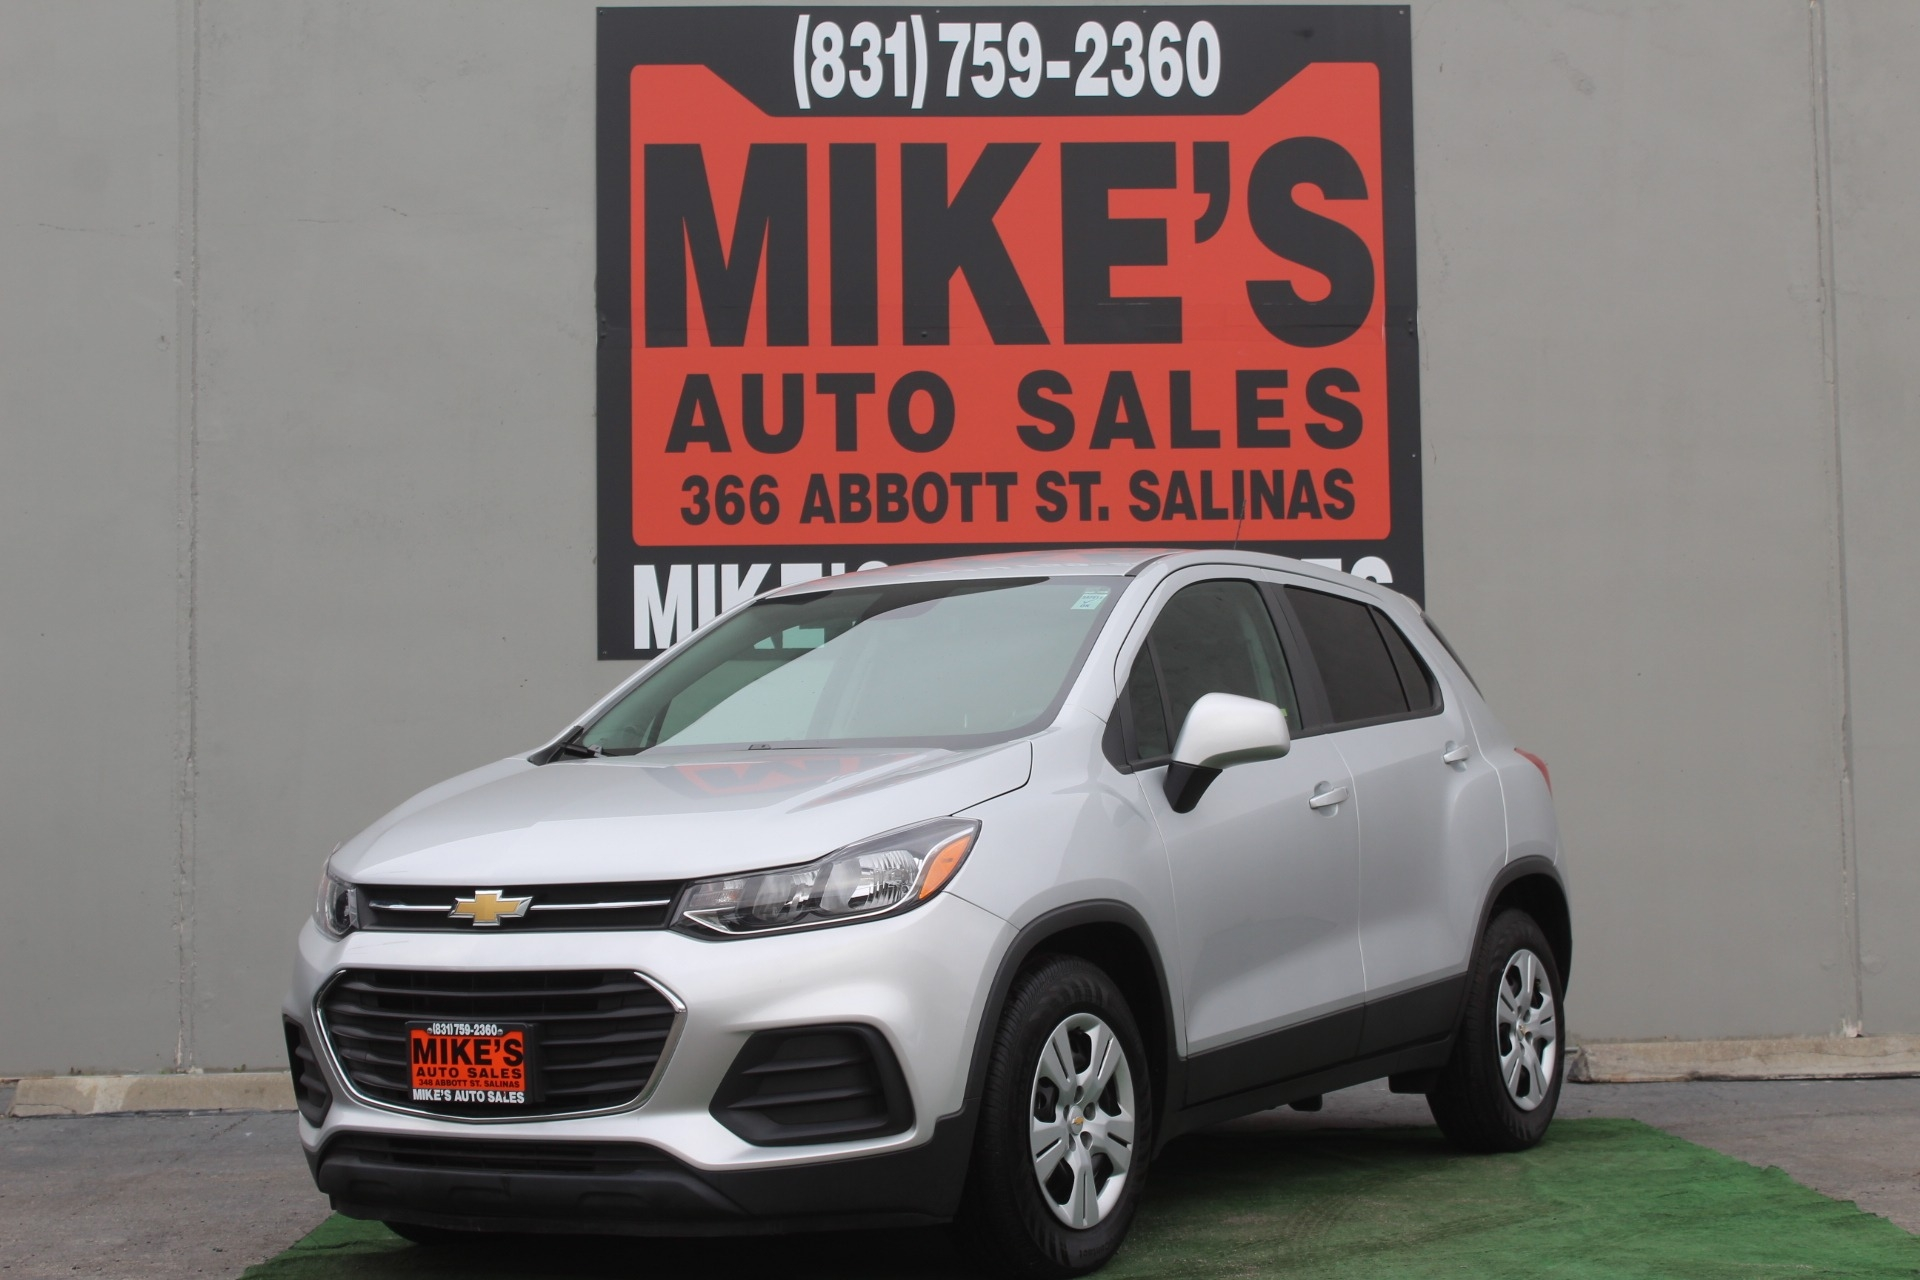 2017 Chevrolet Trax FWD 4dr LS in Salinas, CA